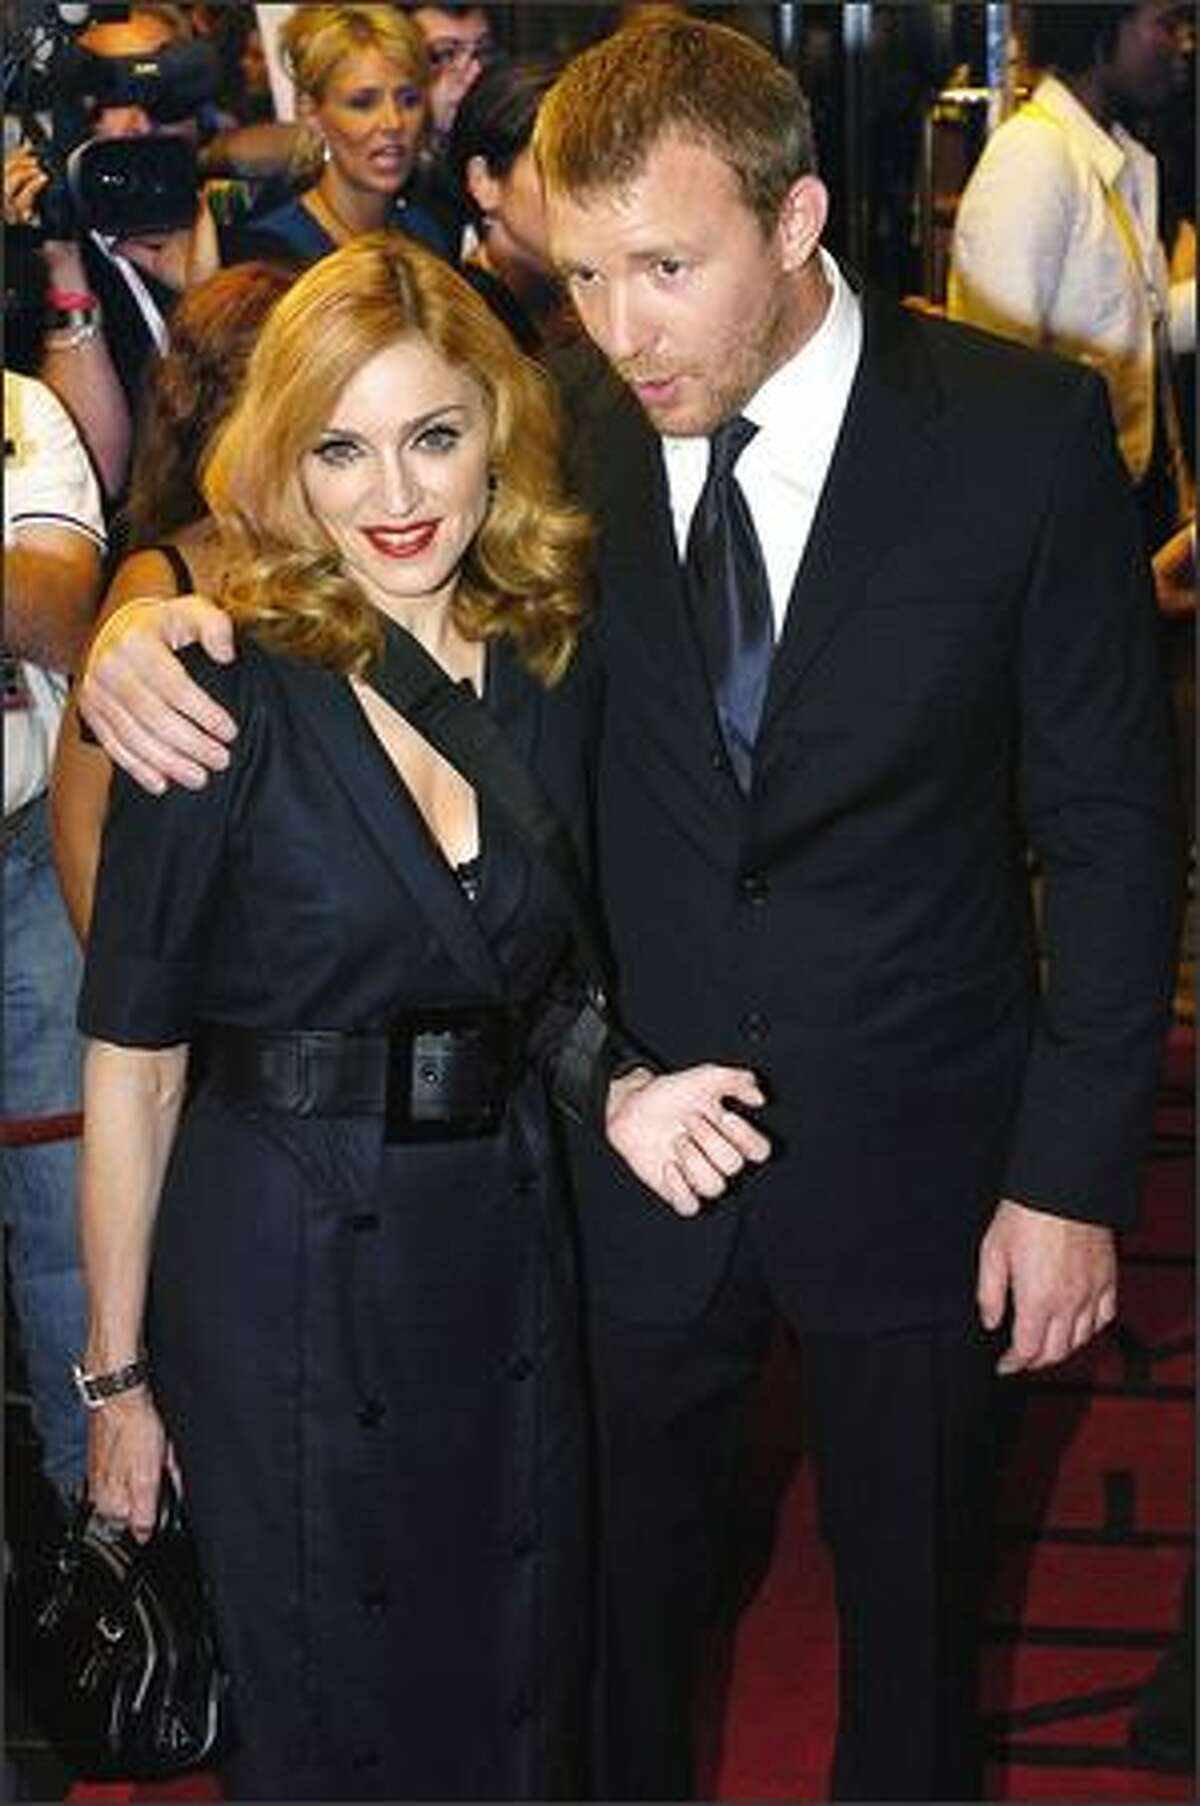 Madonna works it for the camera while arriving at the Toronto International Film Festival with hubby Guy Ritchie on Sunday. They were promoting his new film,